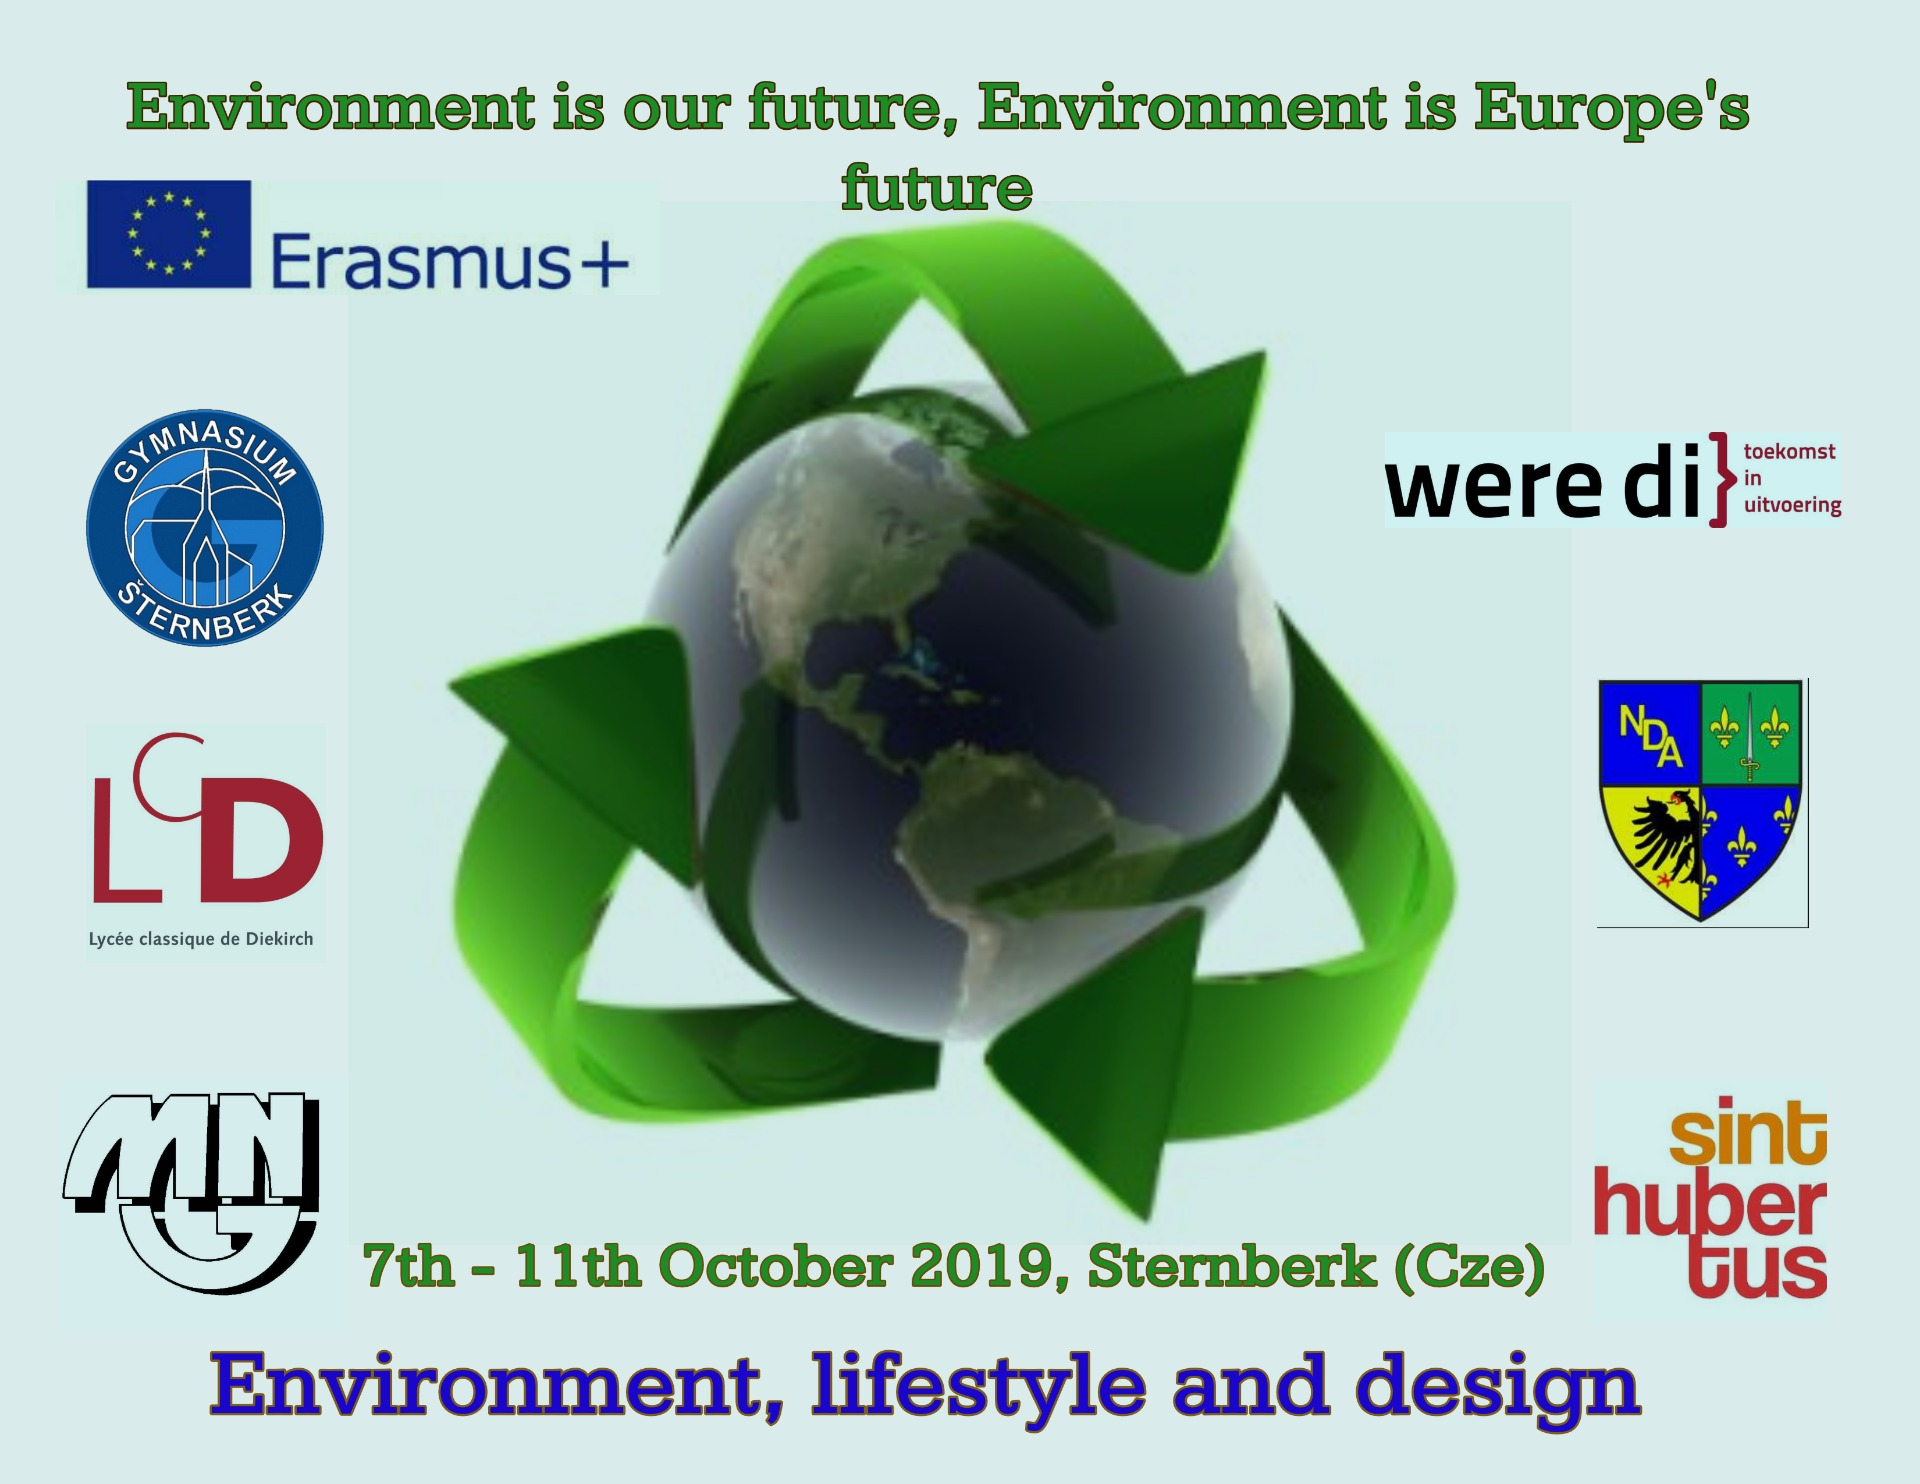 Environment is our future, Environment is Europe's future - Obrázek 1